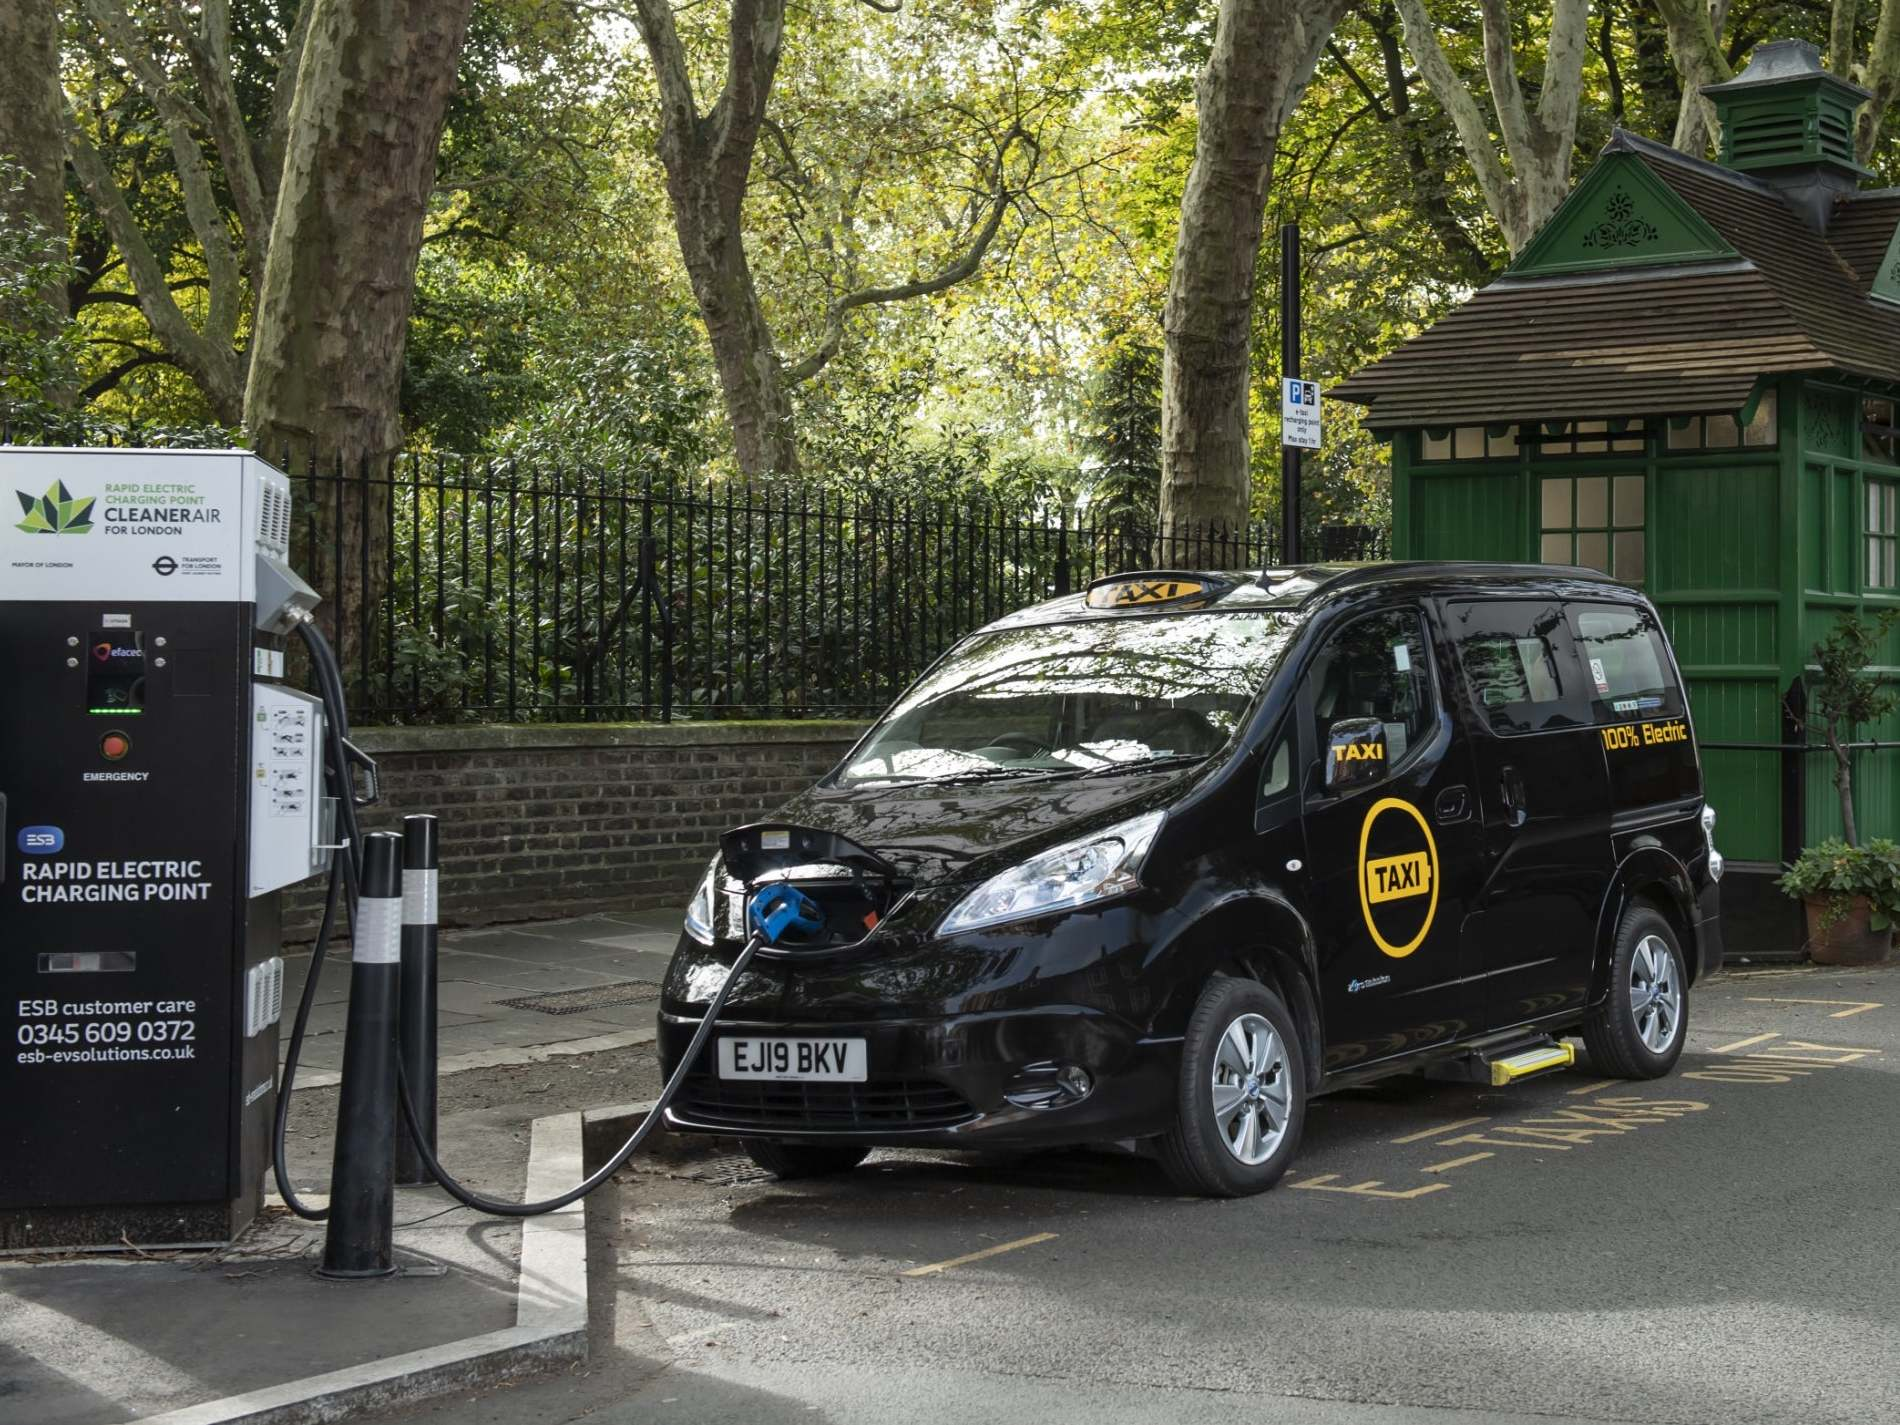 London gets first fully electric taxi since 1899